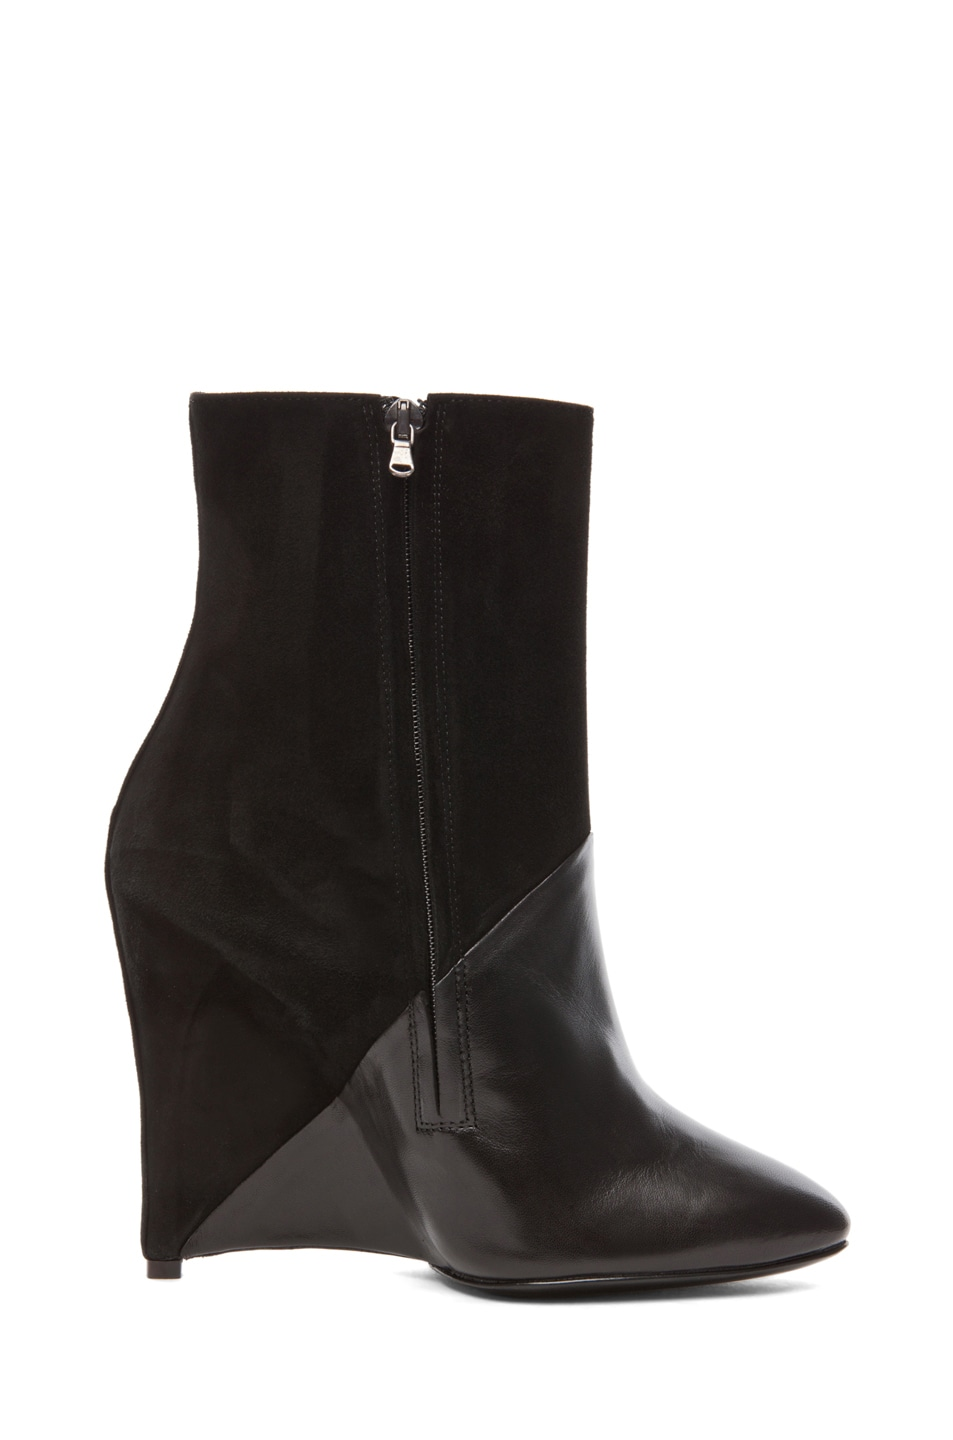 Image 5 of Neil Barrett White Dijon Suede Bootie in Black